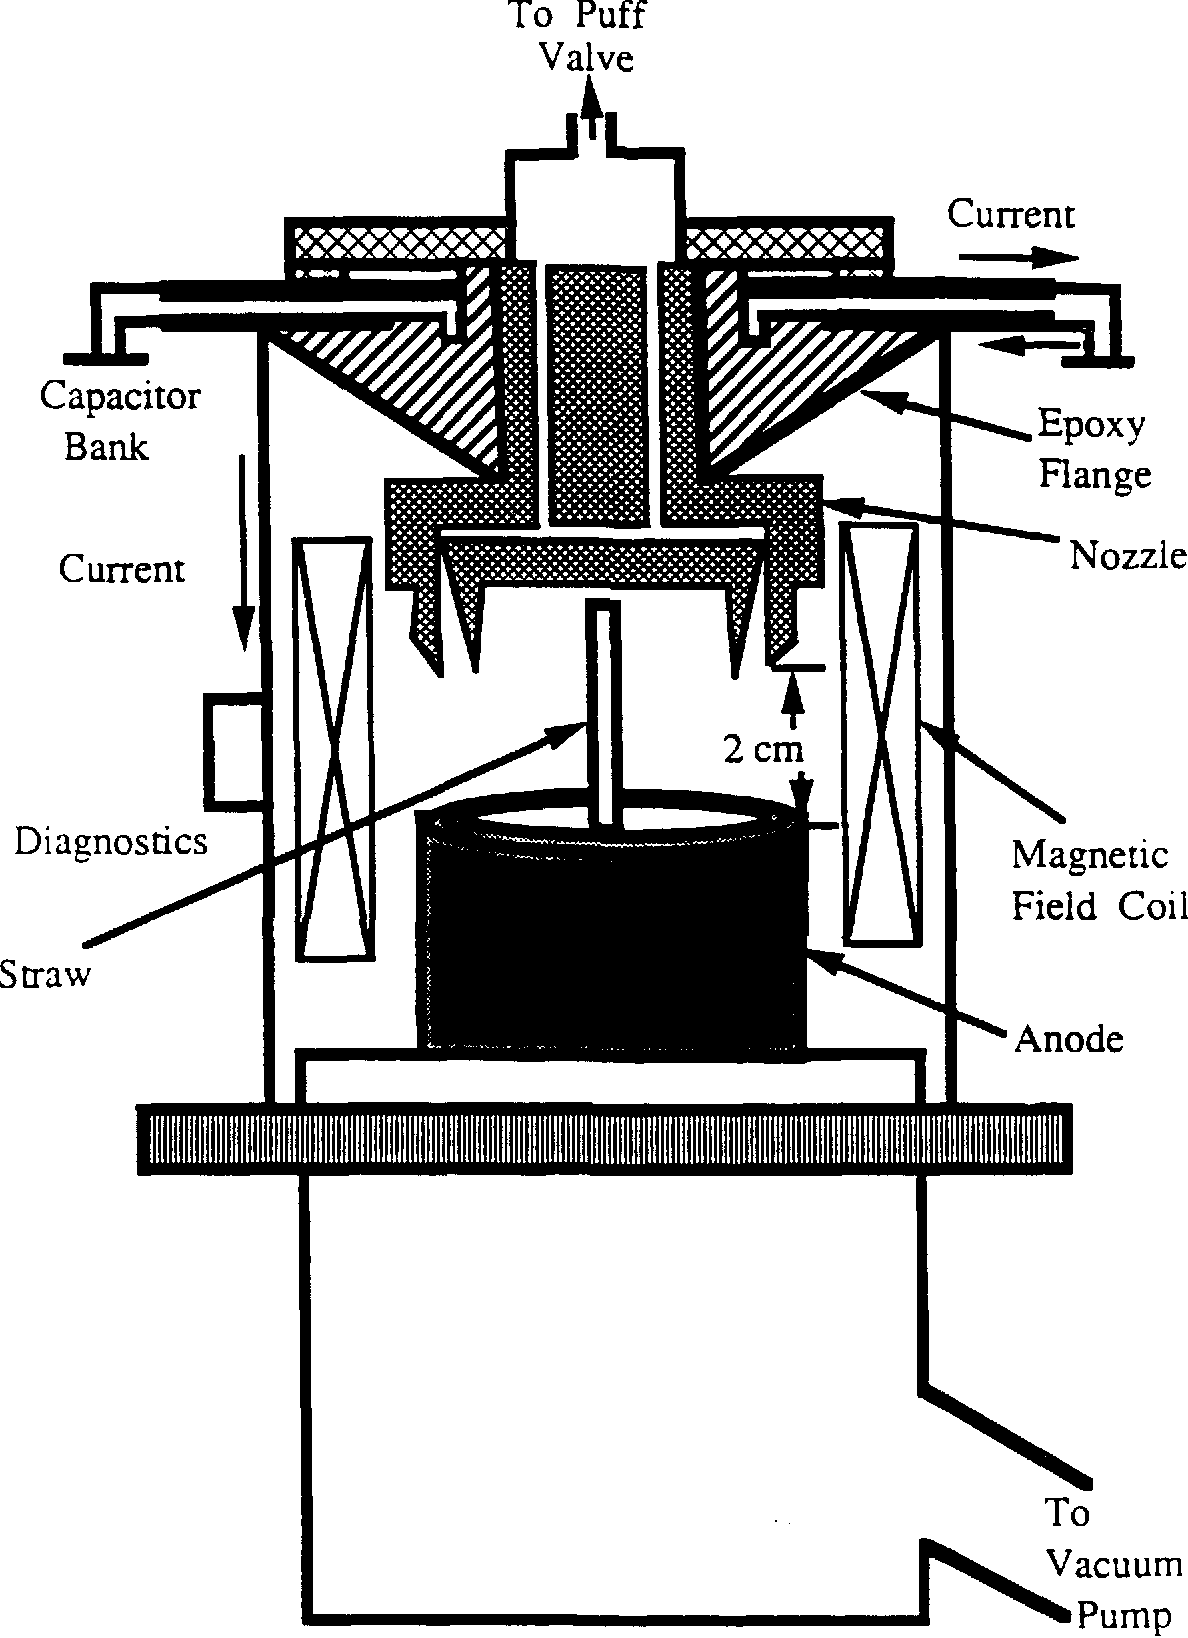 hight resolution of schematic diagram of the uci z e pinch machine